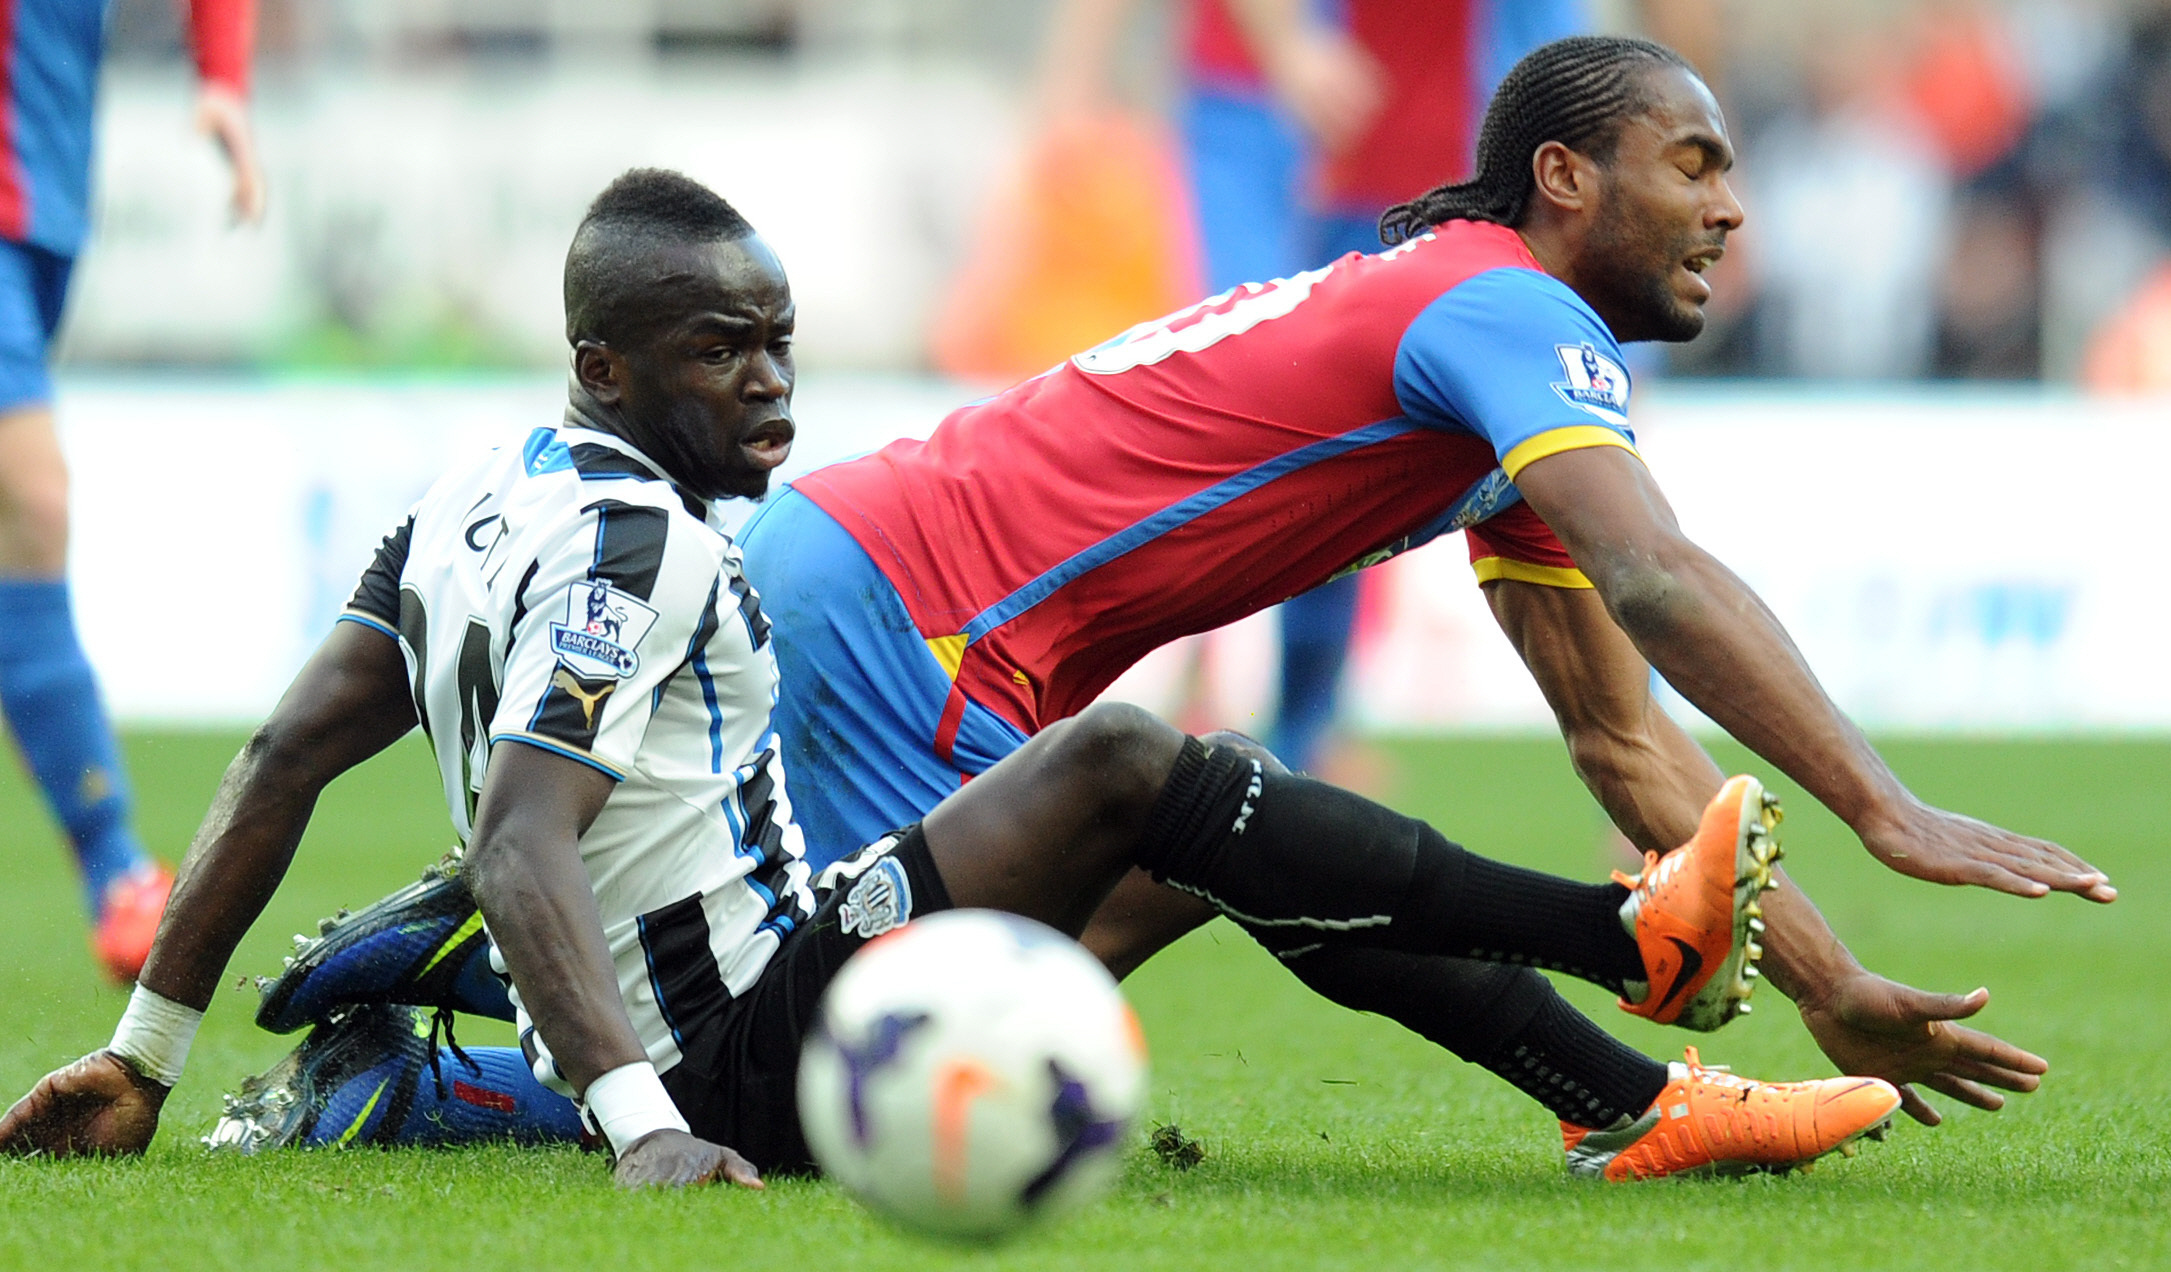 WANTED: Arsenal are understood to be interested in Newcastle midfielder Cheick Tiote